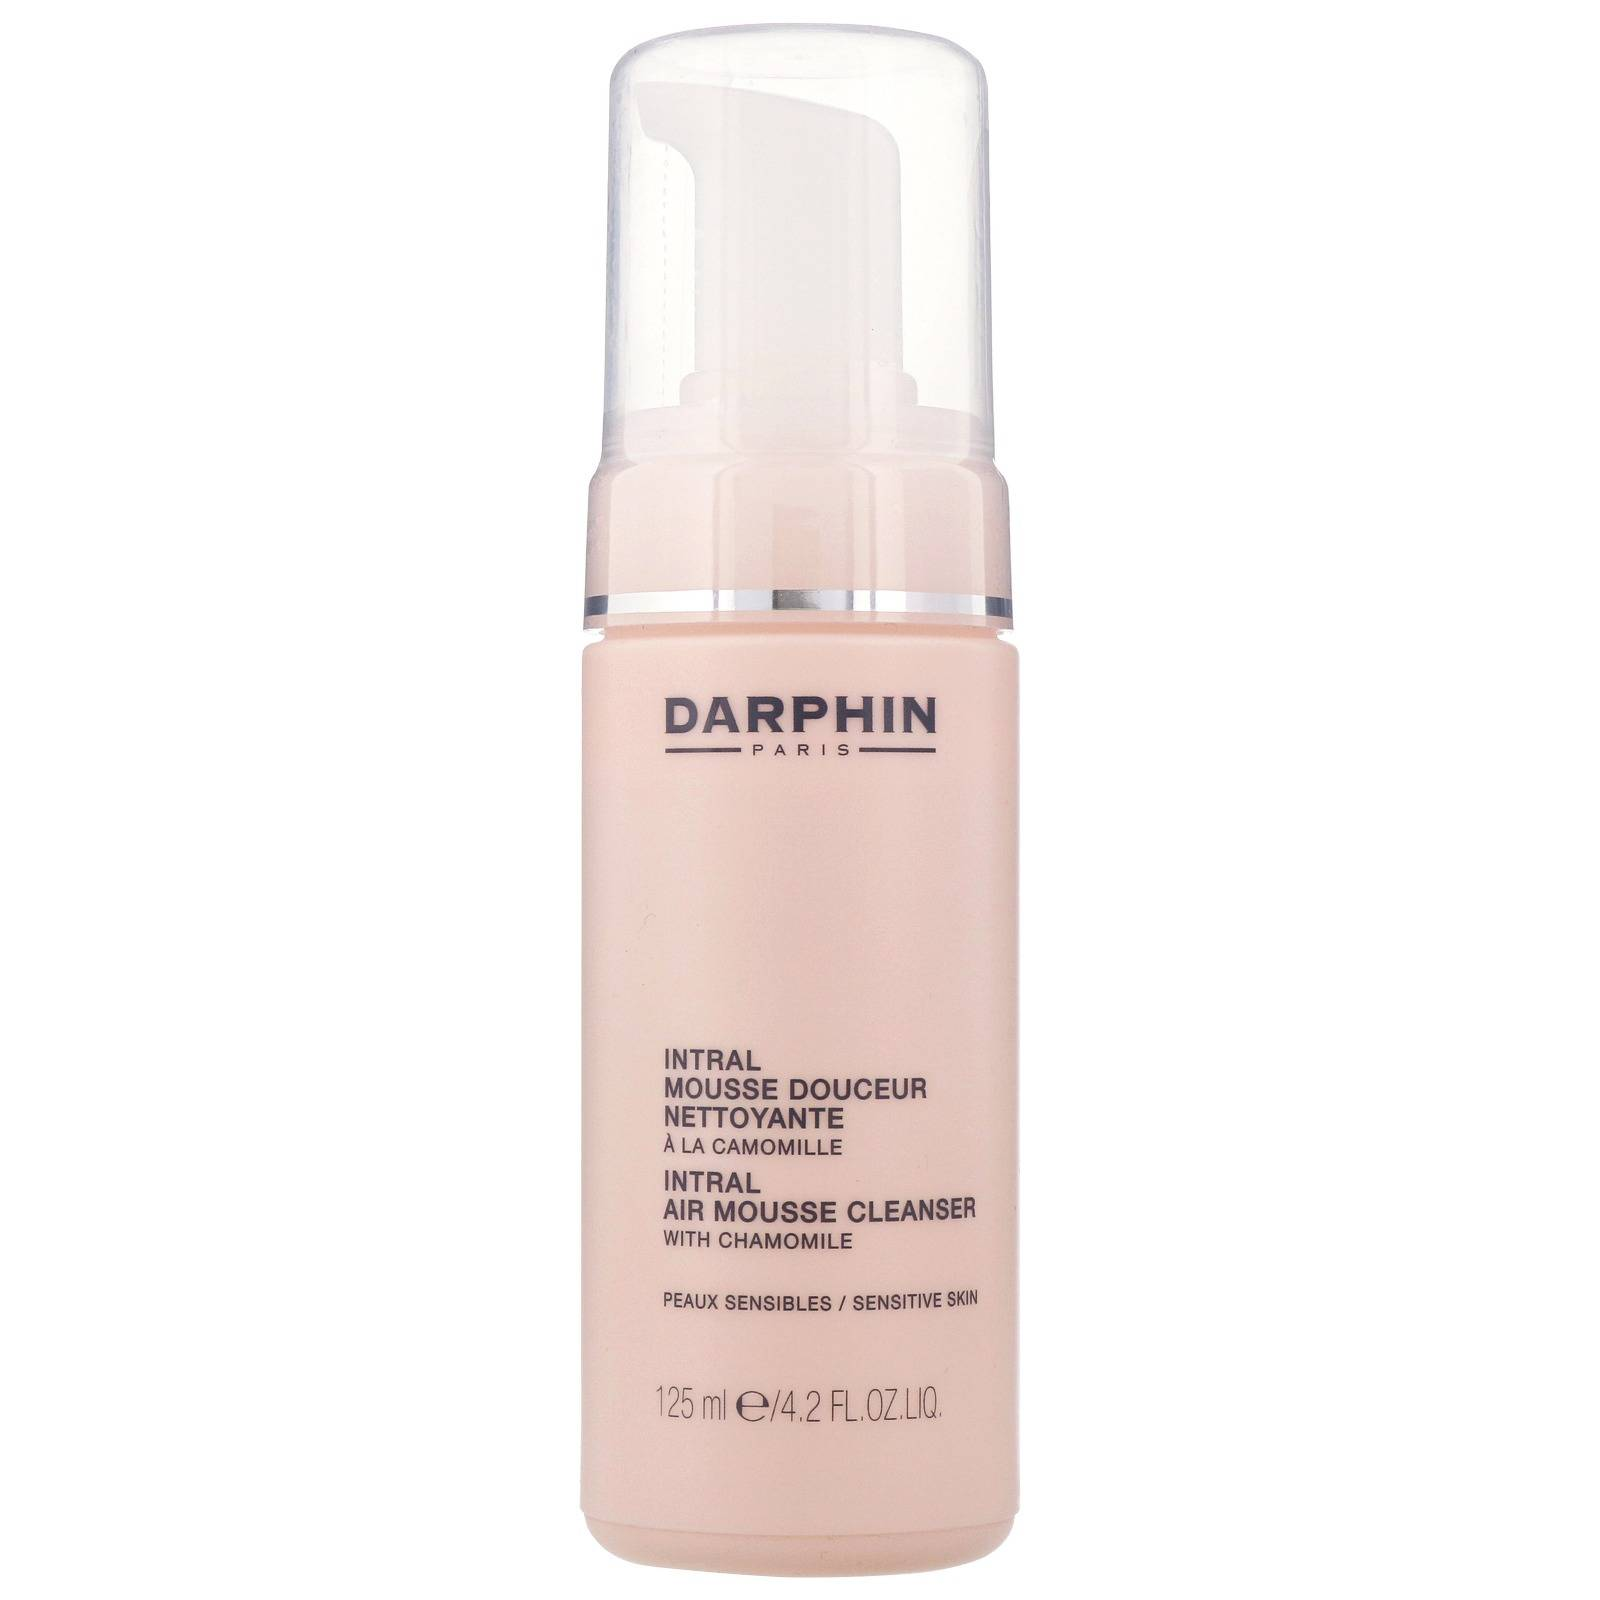 Darphin Intral Air Mousse Cleanser 125ml